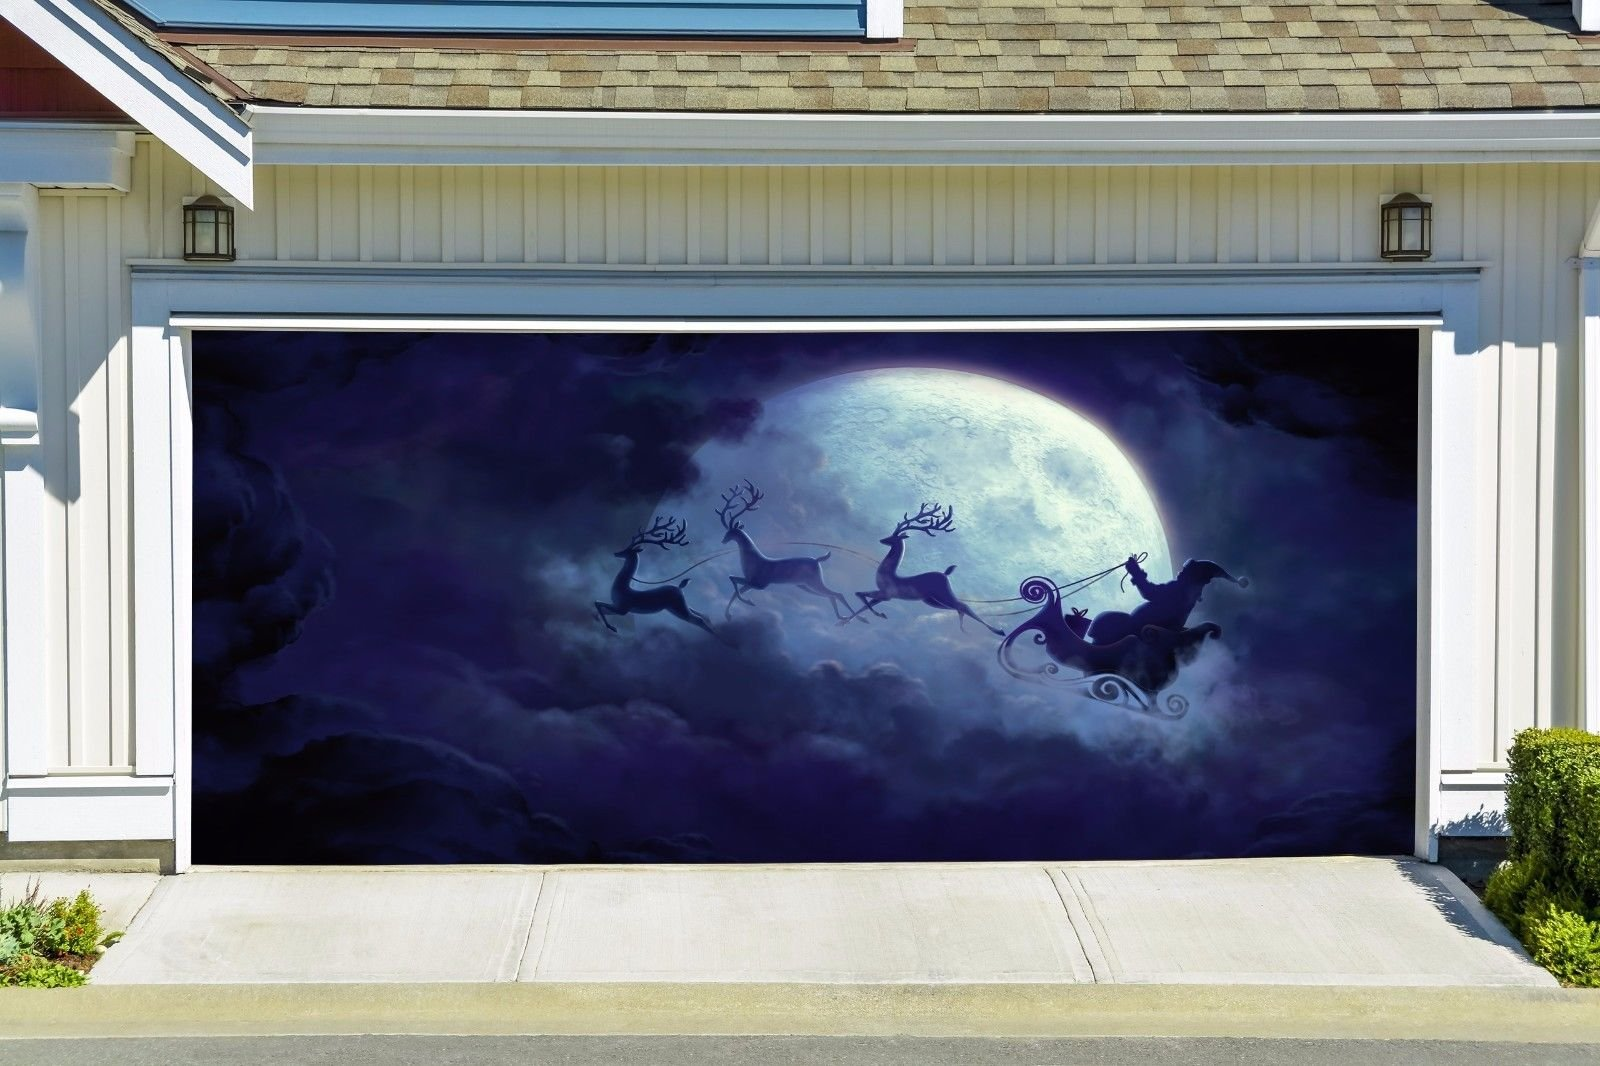 Merry Christmas Santa Claus On Reindeer Sleigh Ride Banners for 2 Car Garage Door Covers Outdoor Billboard Garage Door Holiday Christmas Decor Full Color House Murals size 82x188 inches DAV23